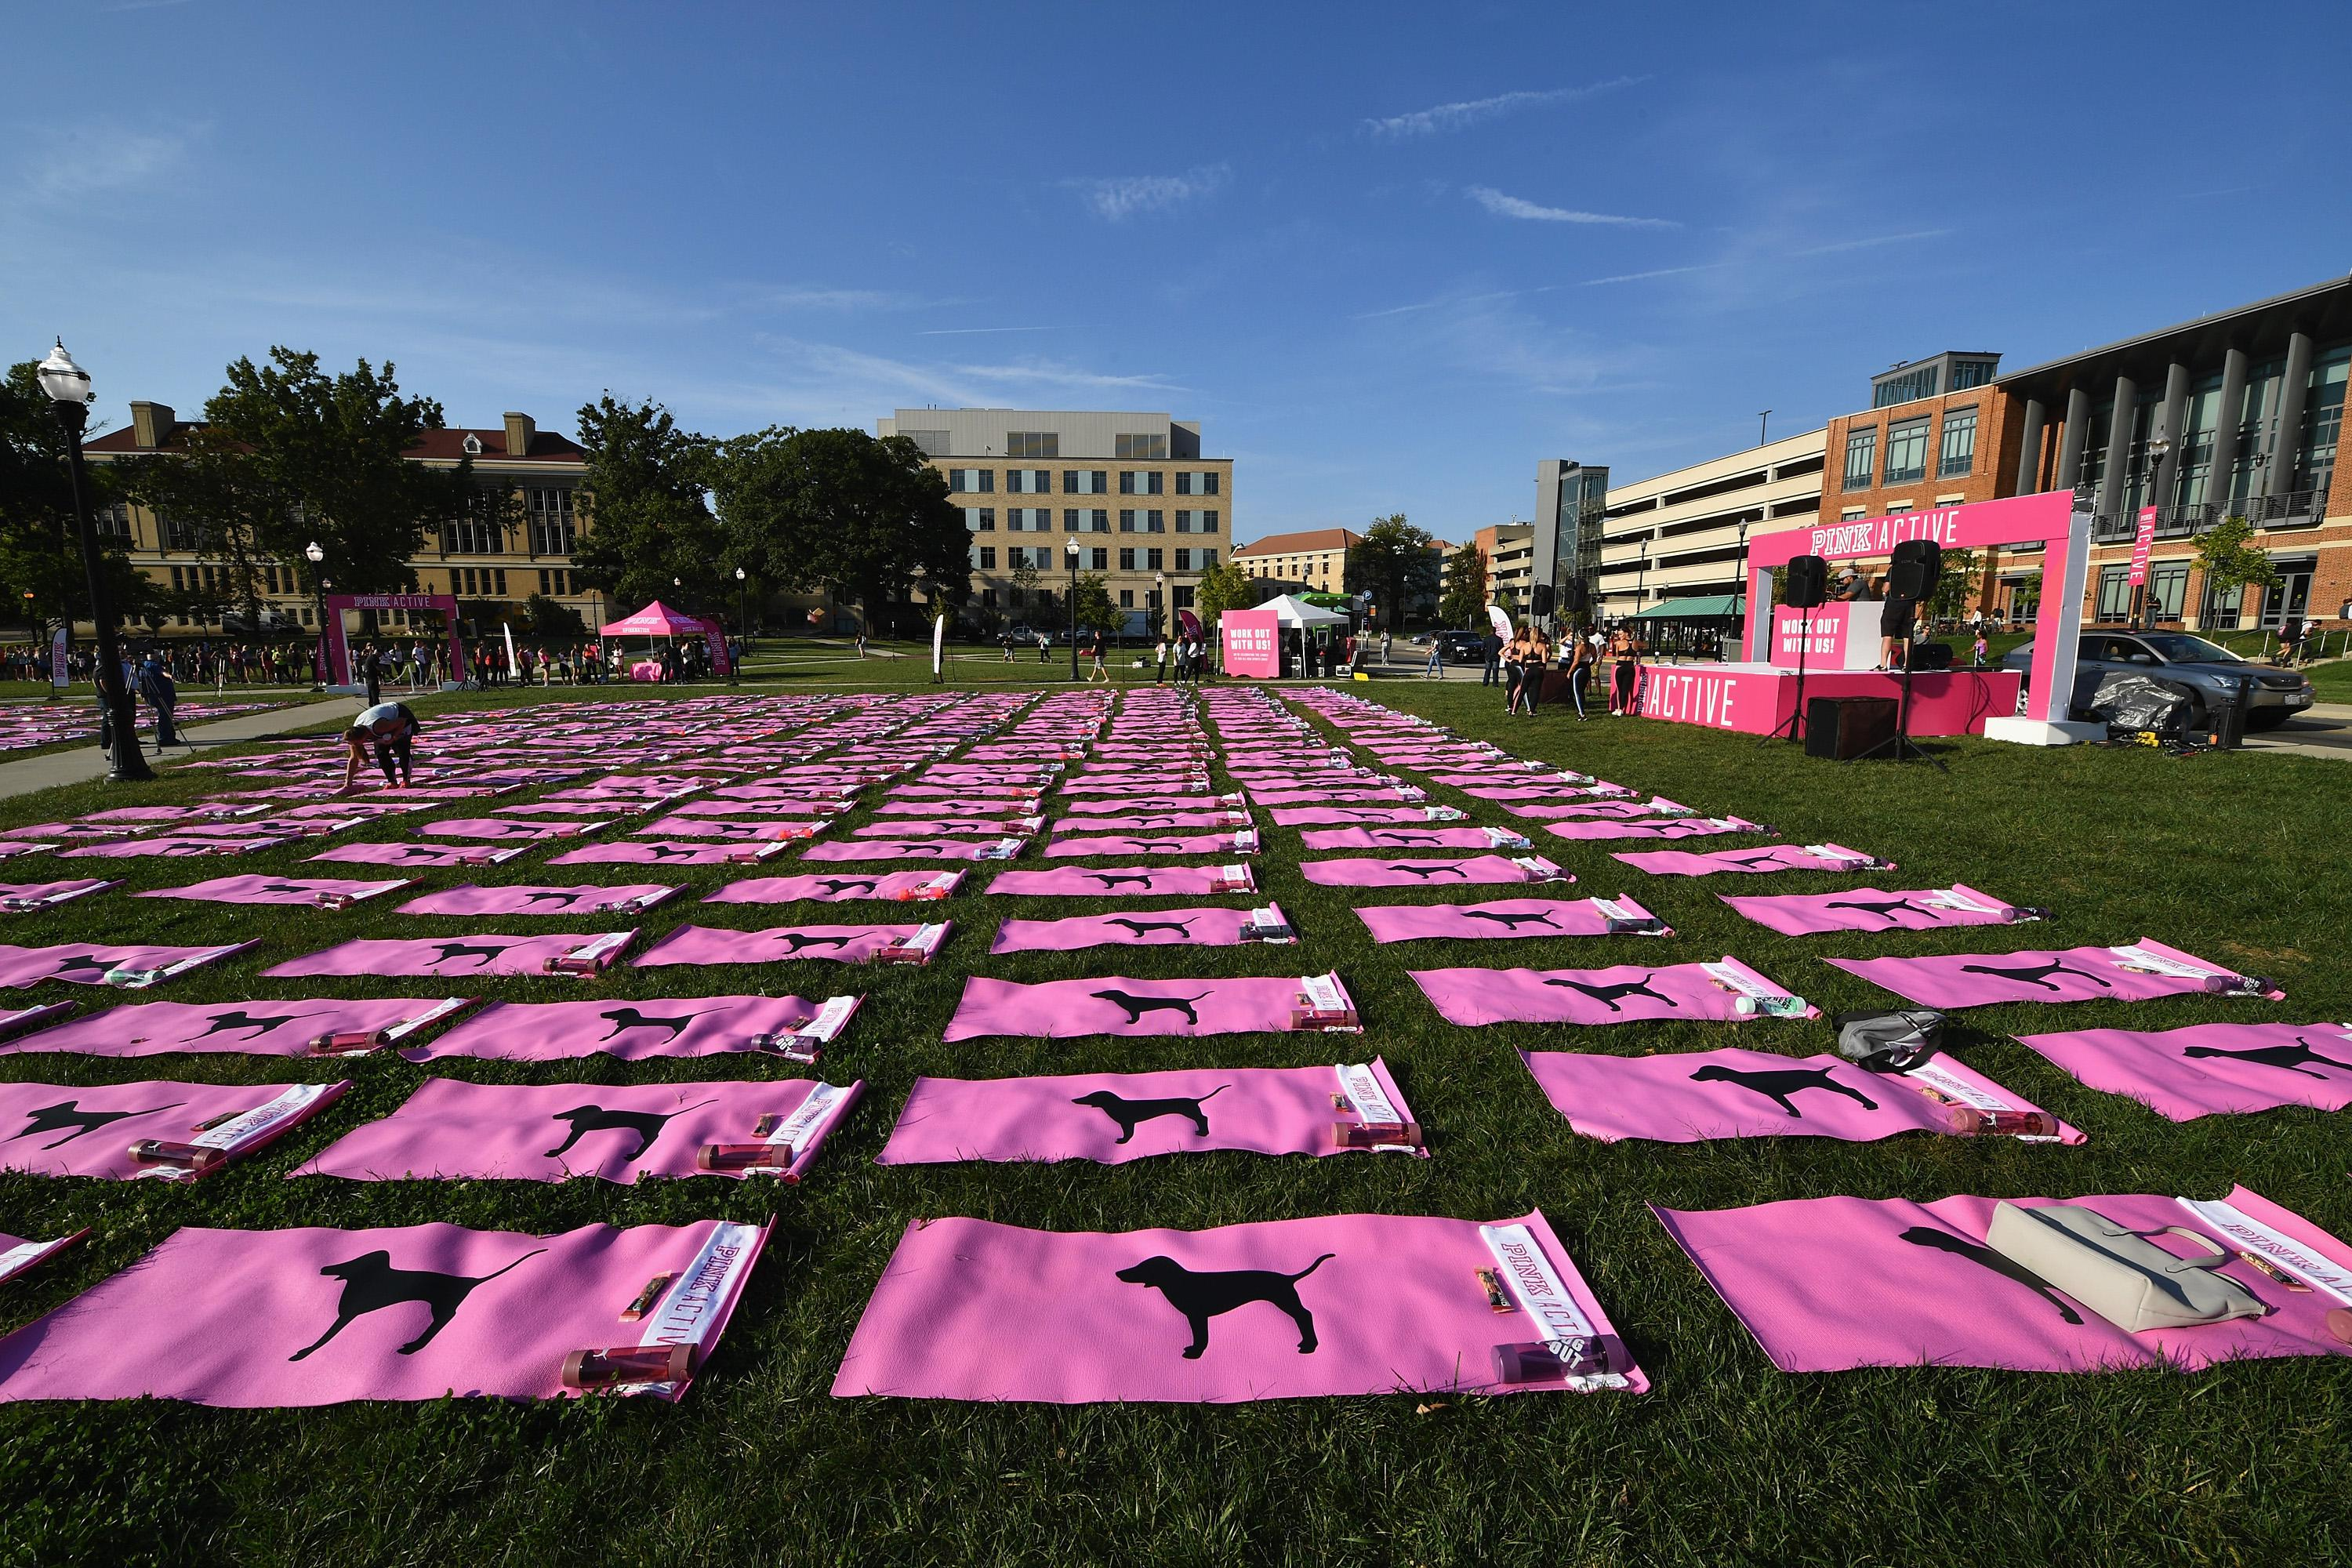 A view of the campus at Ohio State University, where Victoria's Secret's Pink held an event. A grassy field is covered in pink yoga mats, and there is a pink stage at the front of the field.